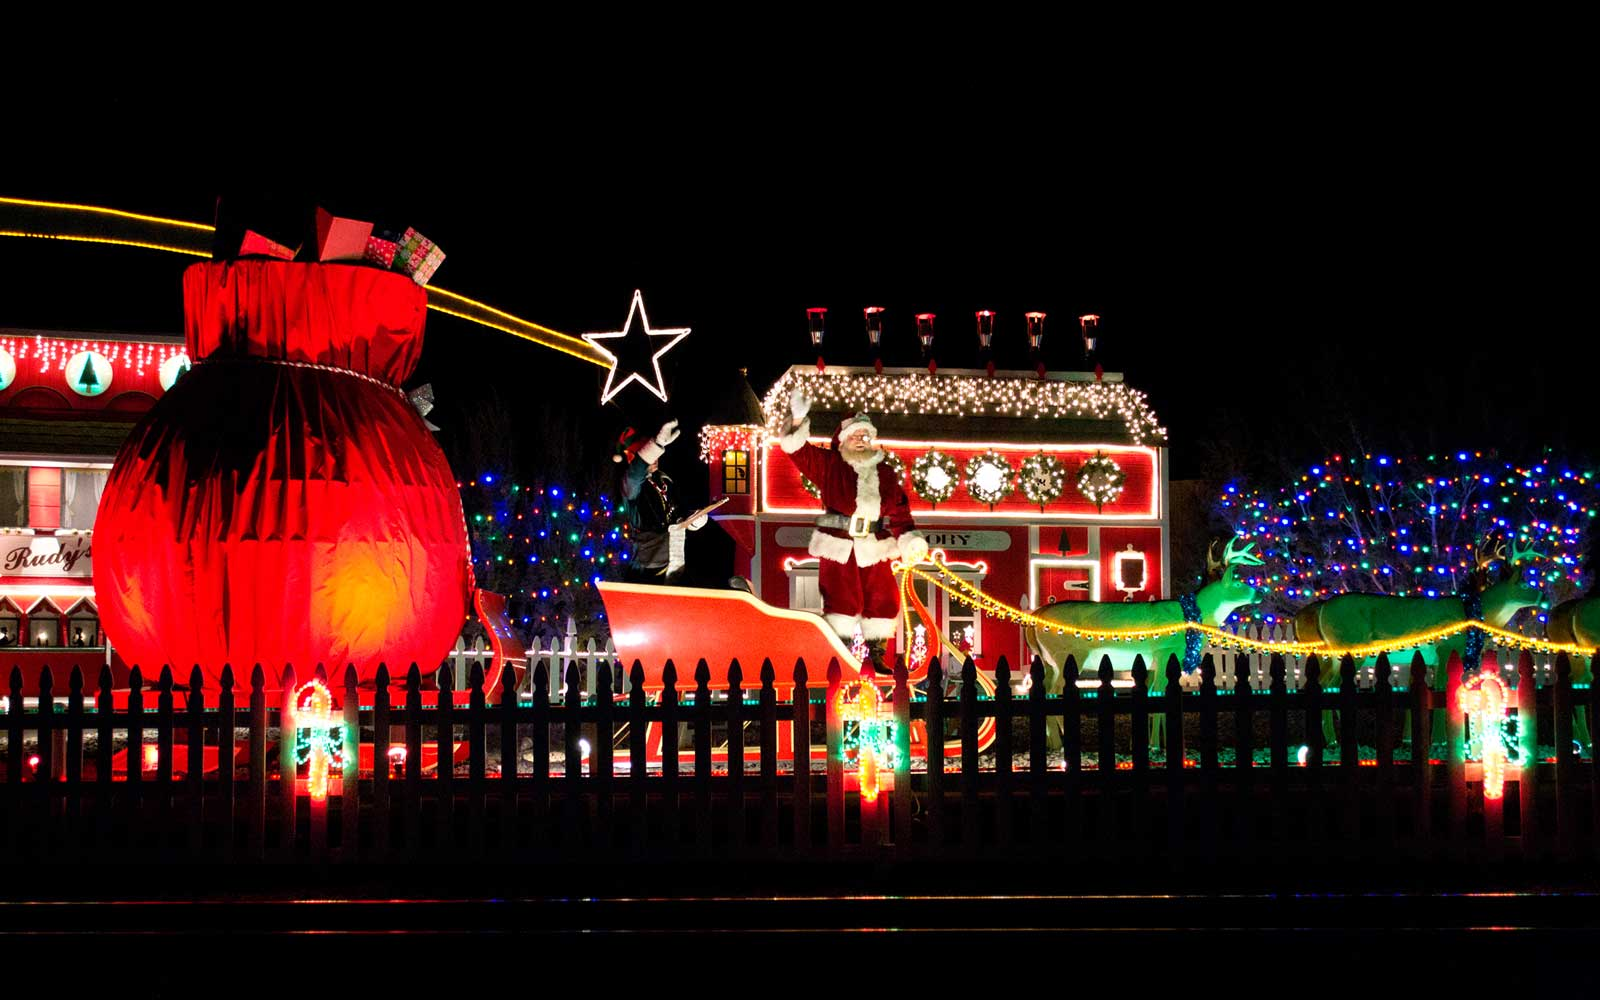 16 Festive Train Rides You Can Take For the Holidays